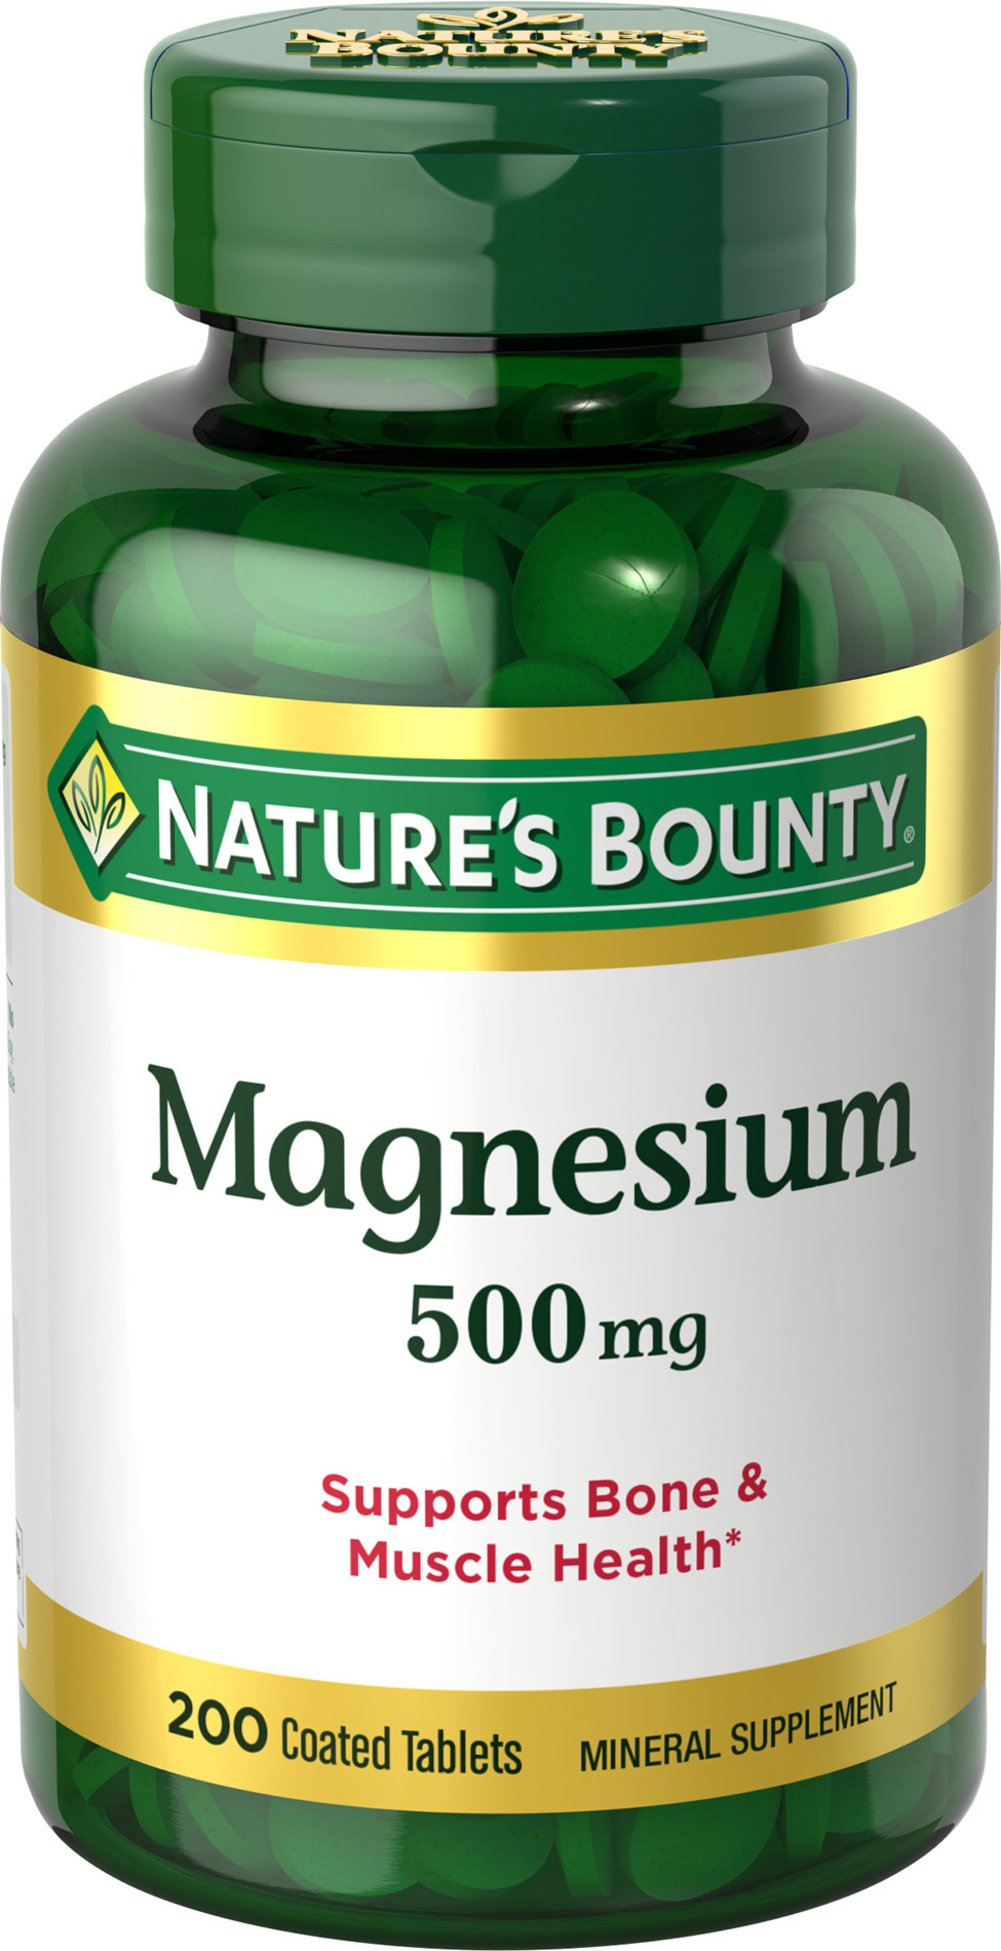 Nature's Bounty® Magnesium 500 mg